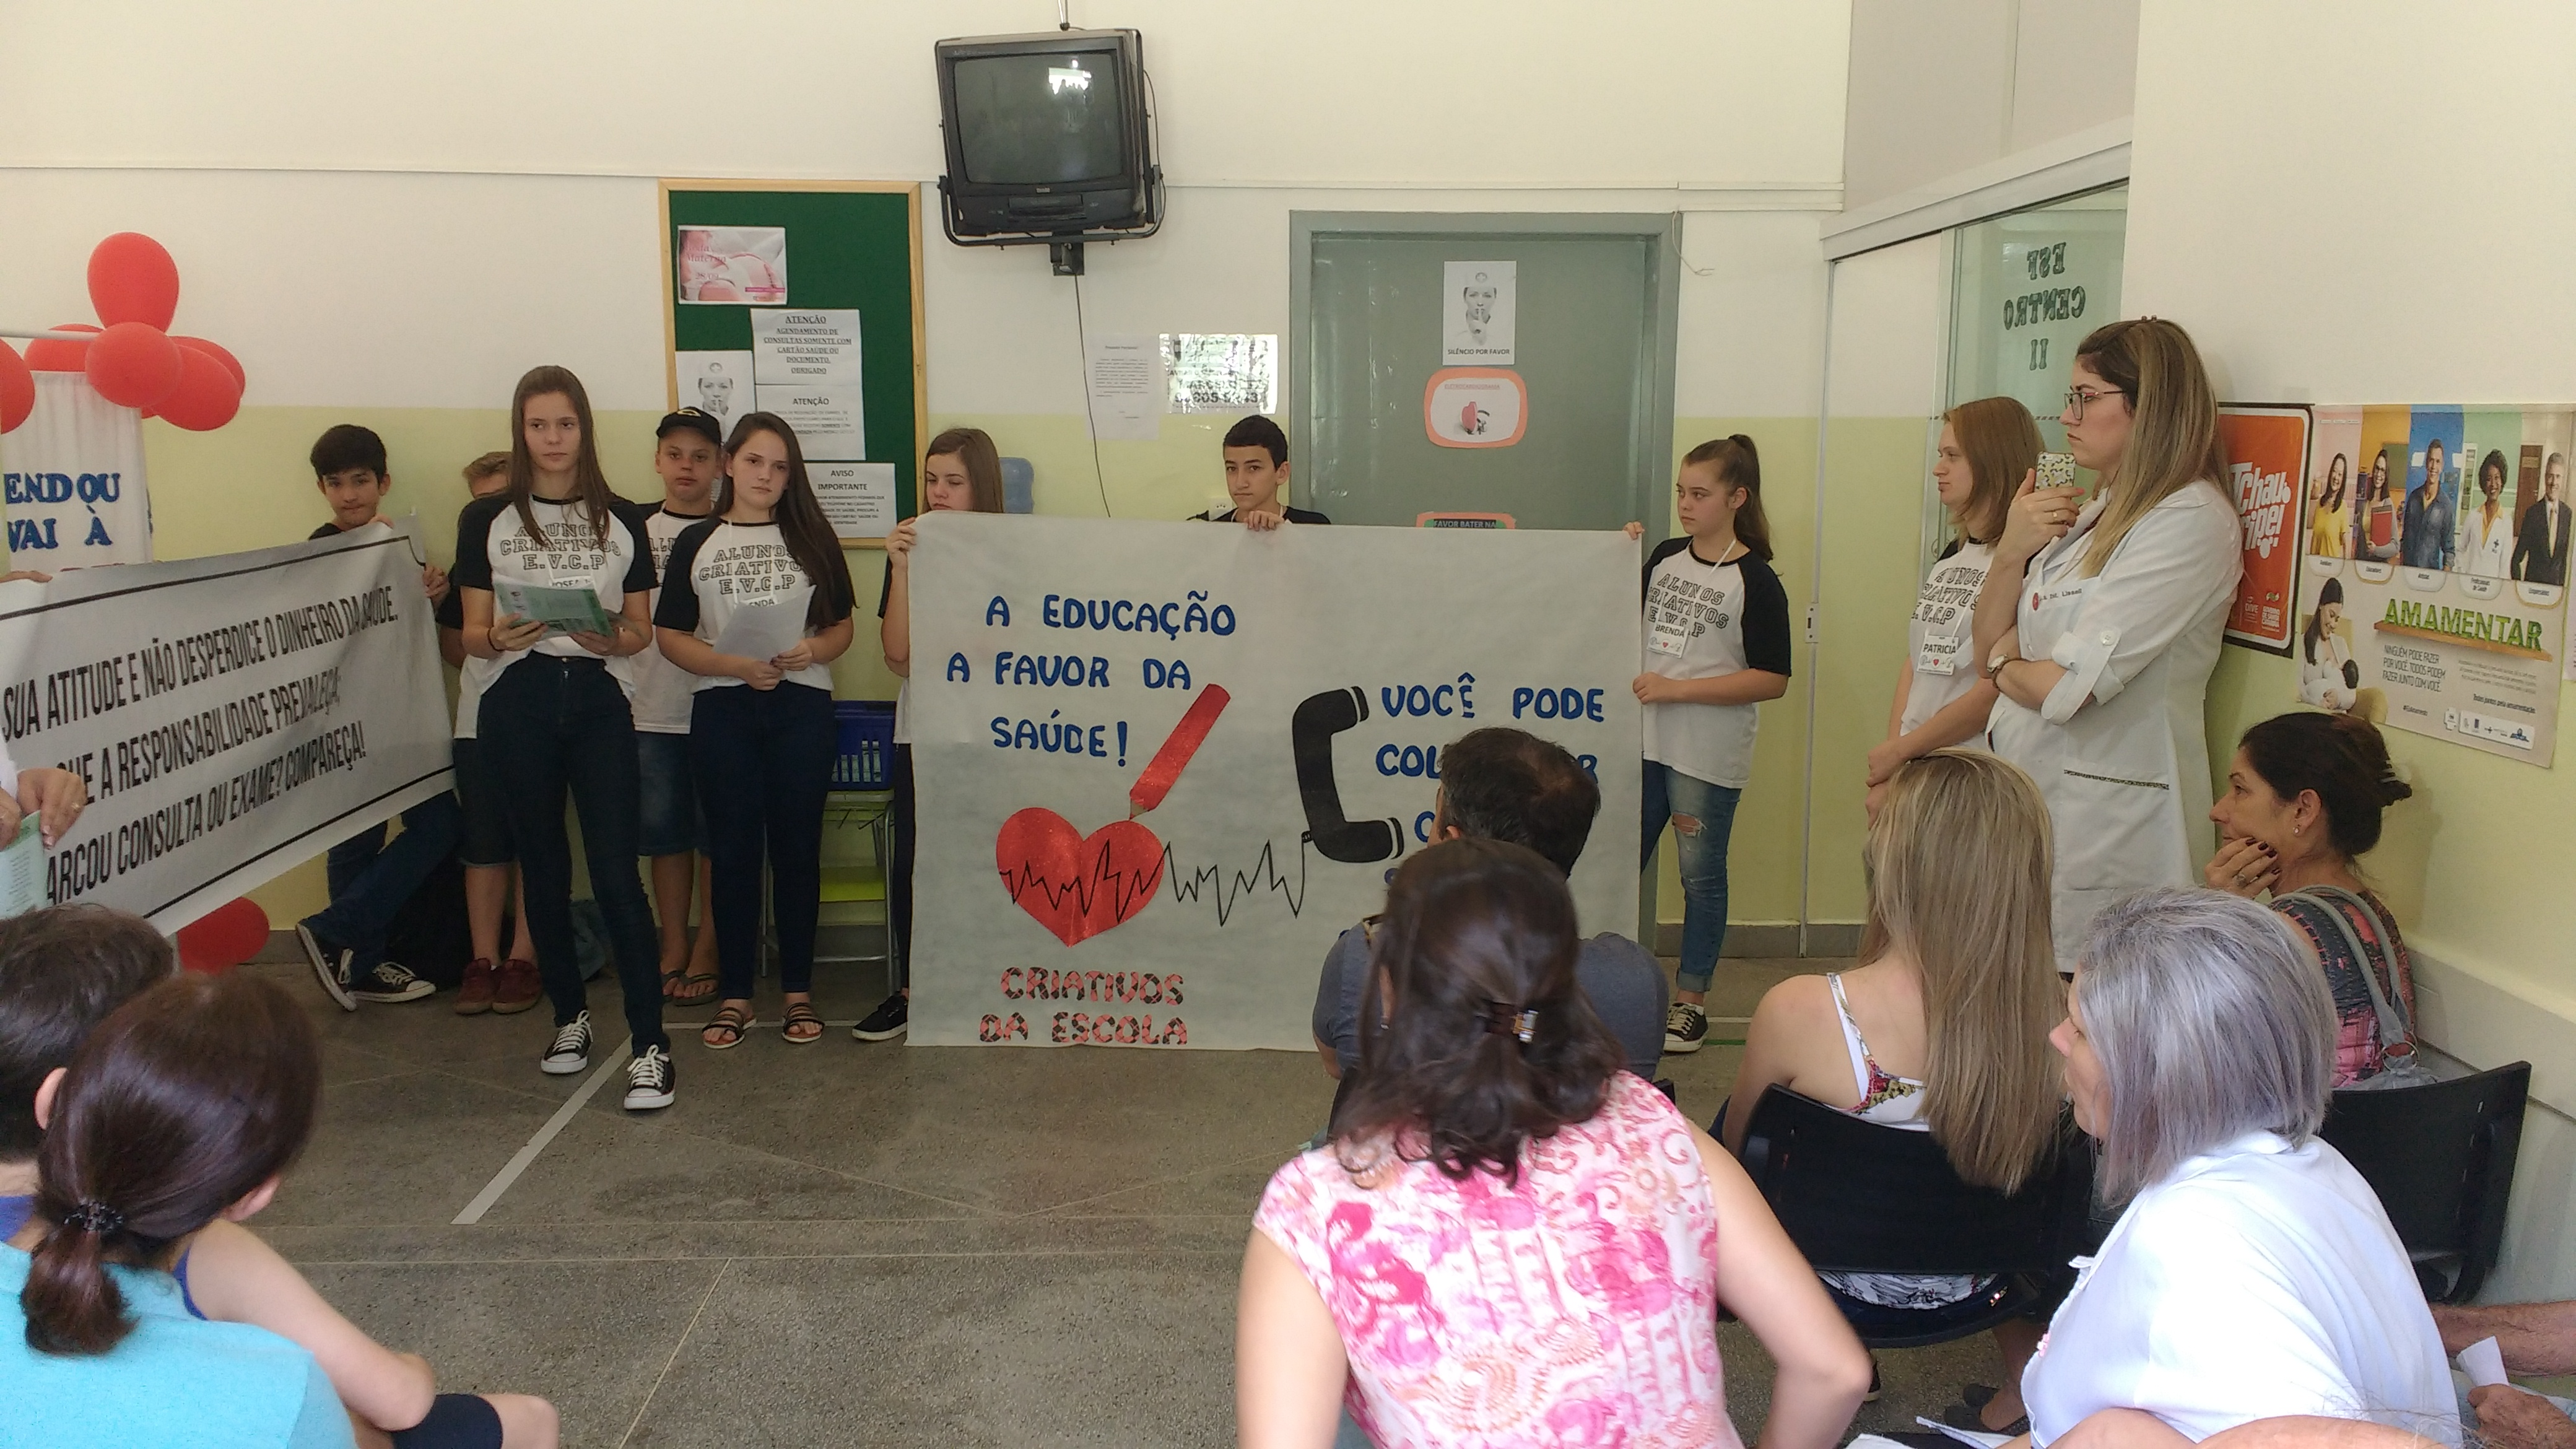 A group of teenagers holds up two big posters in front of a classroom, making a presentation to an audience of adults, who are sitting on chairs.